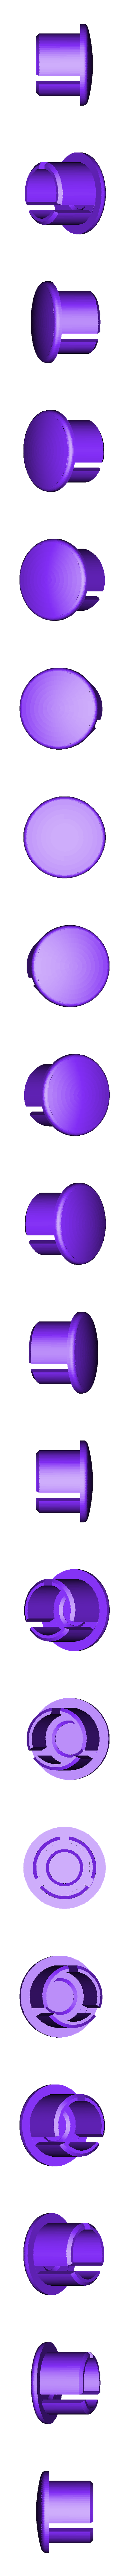 embout guidon velo de course v1.stl Download free STL file Tip for bicycle handlebars (road bikes) • 3D printing template, Andrieux